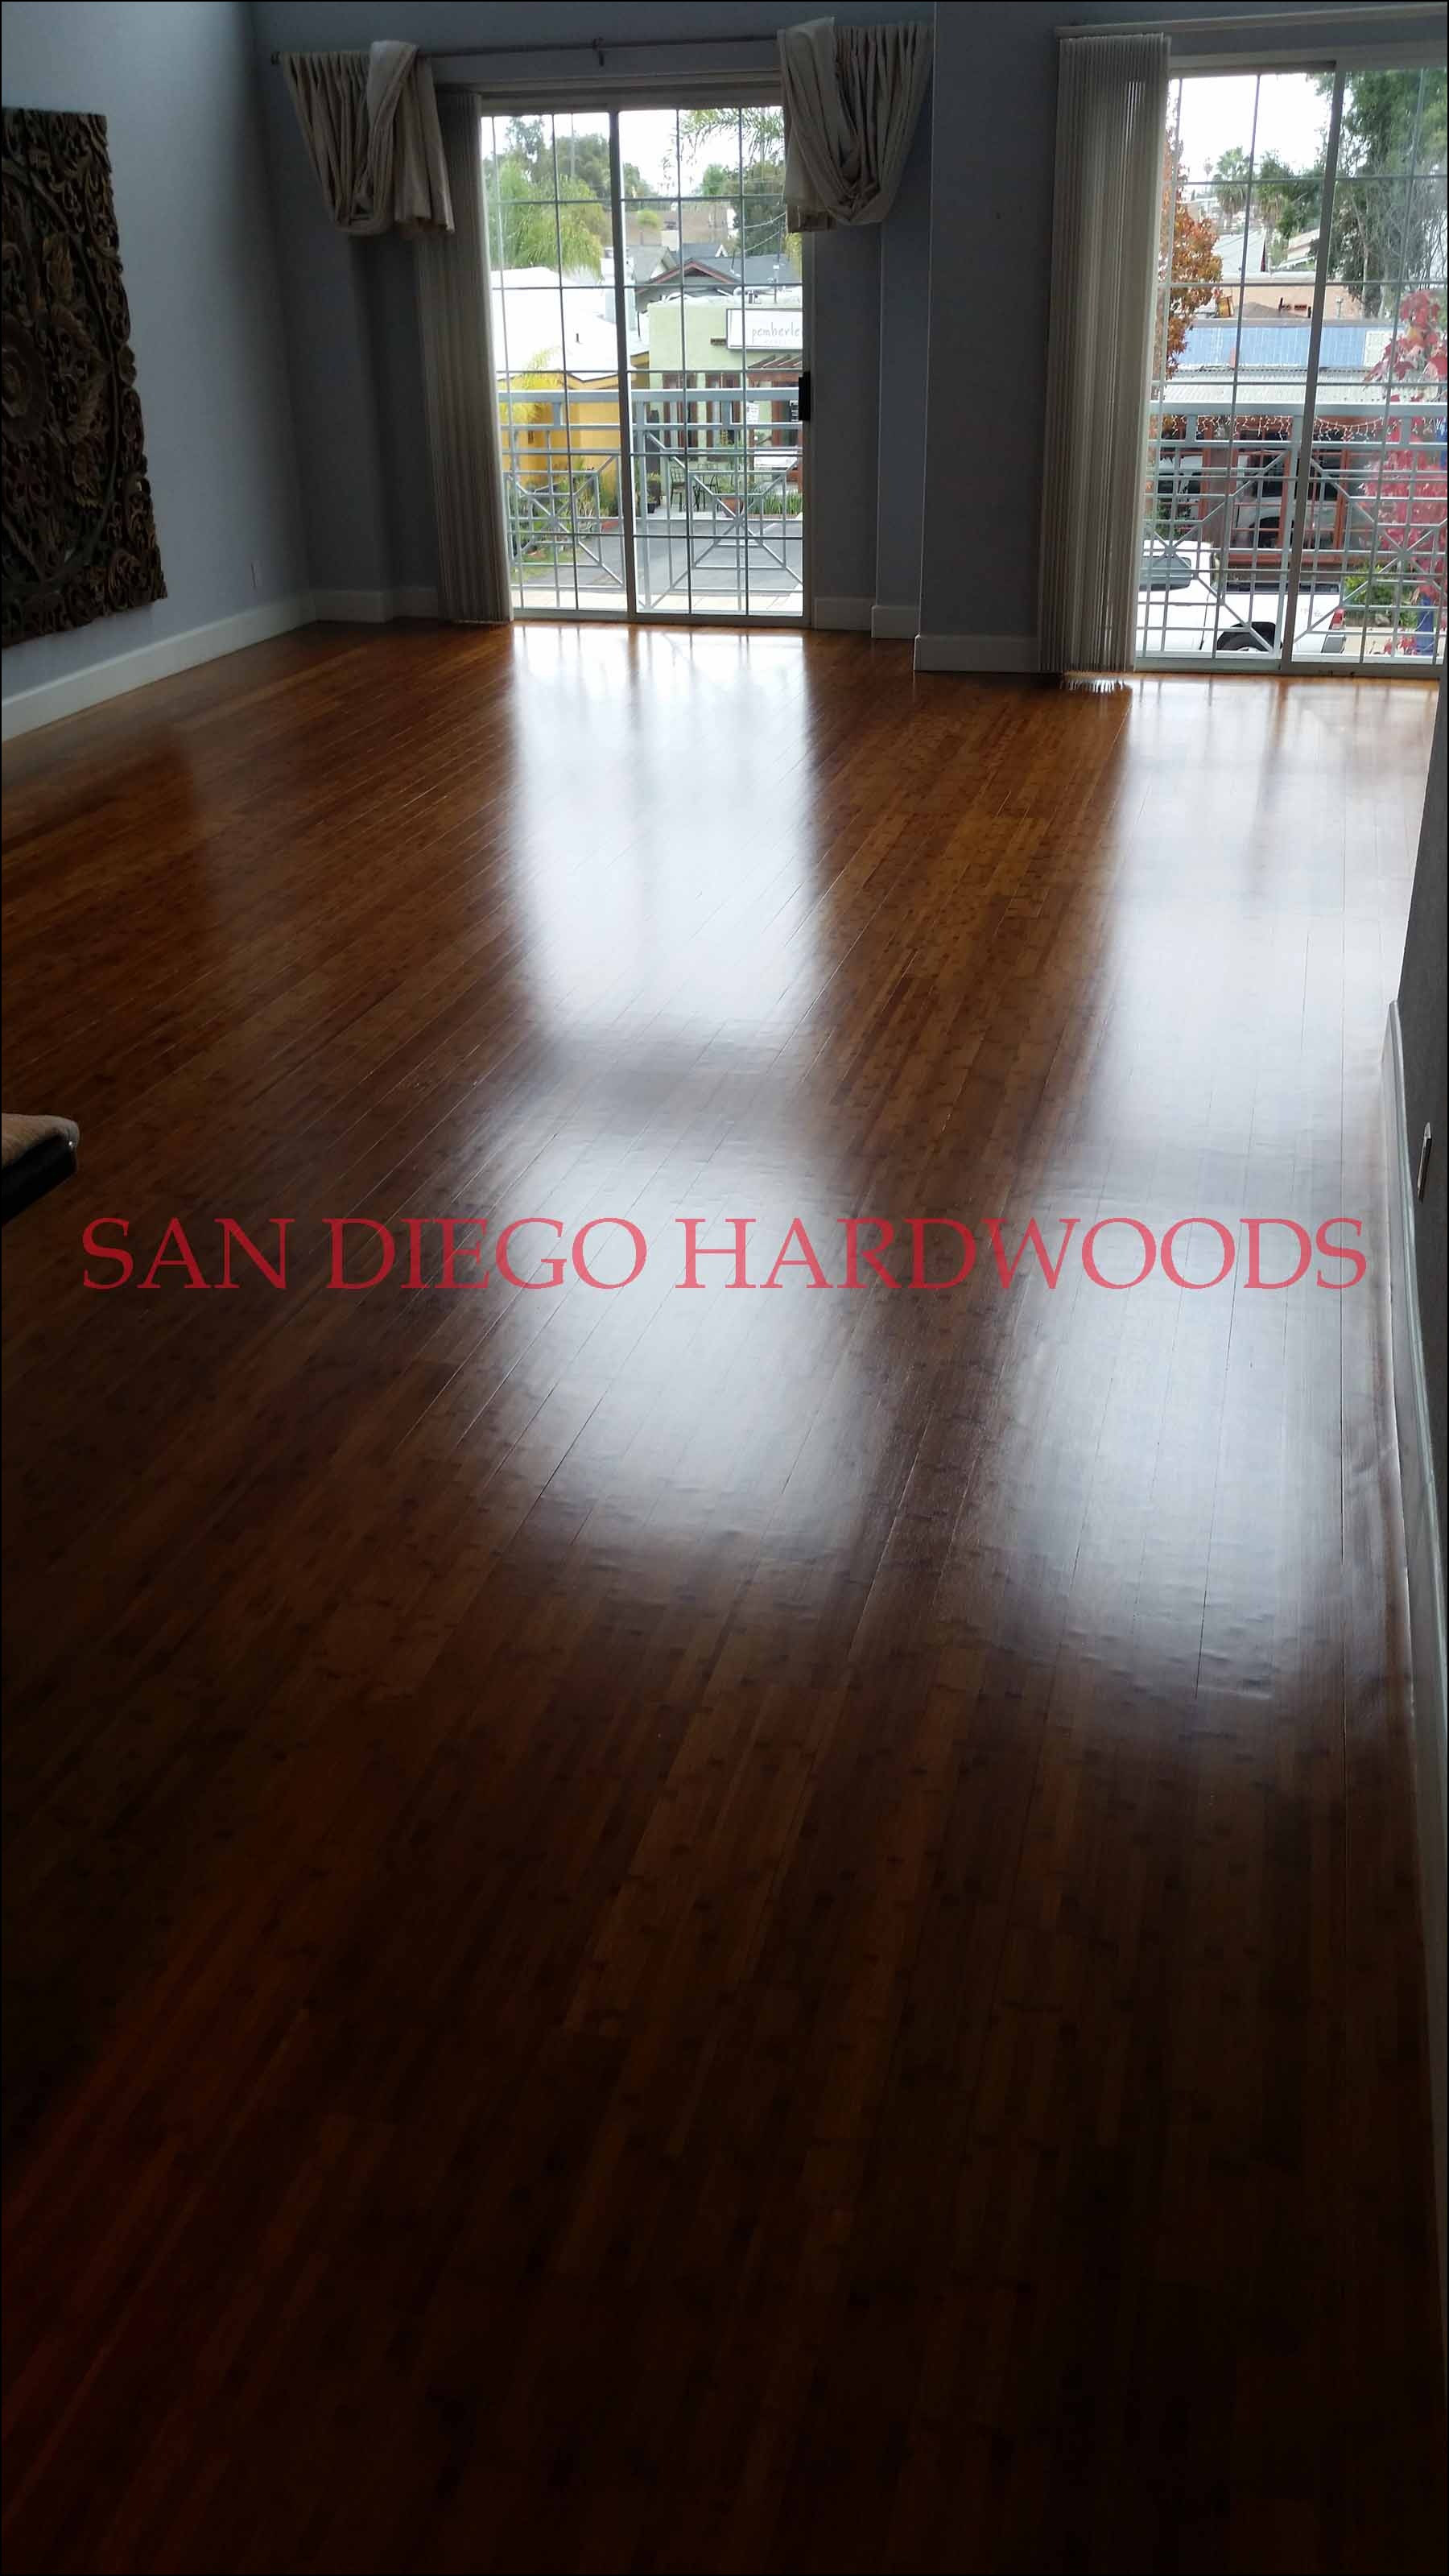 acacia hardwood flooring lowes of what is flooring ideas pertaining to what is the highest quality laminate flooring images san diego hardwood floor restoration 858 699 0072